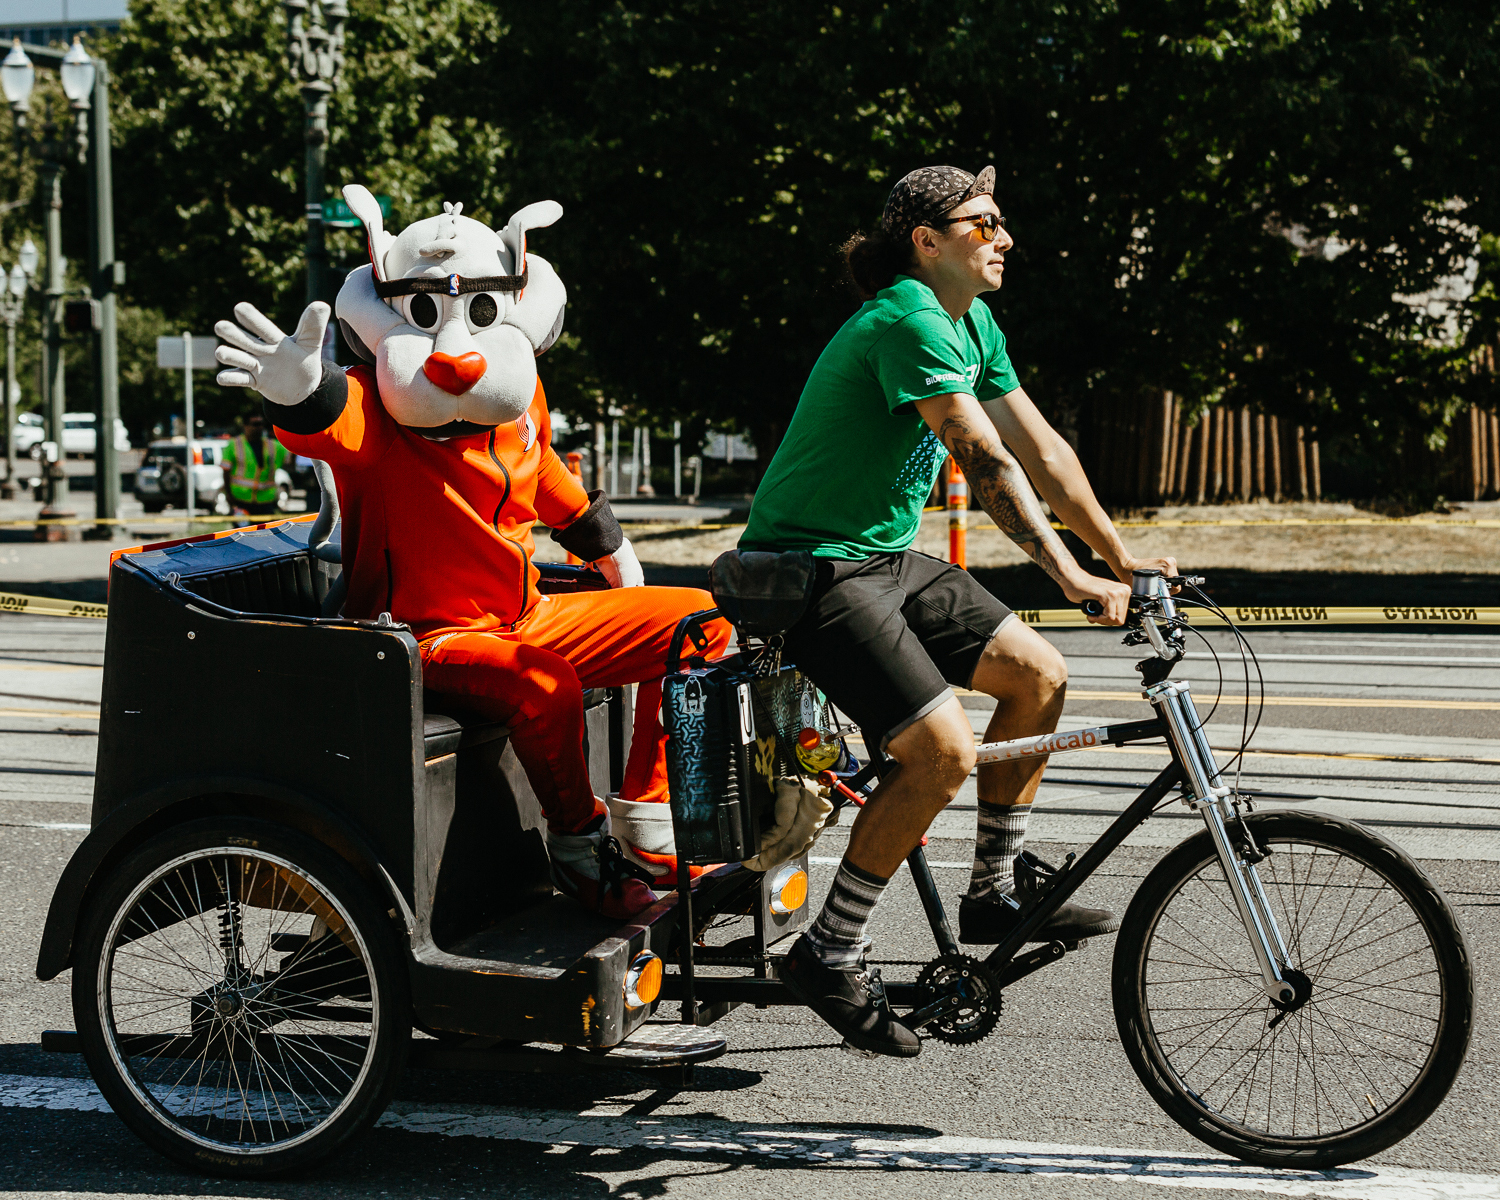 Blaze, the Trail Blazers mascot, rides by in a pedicab